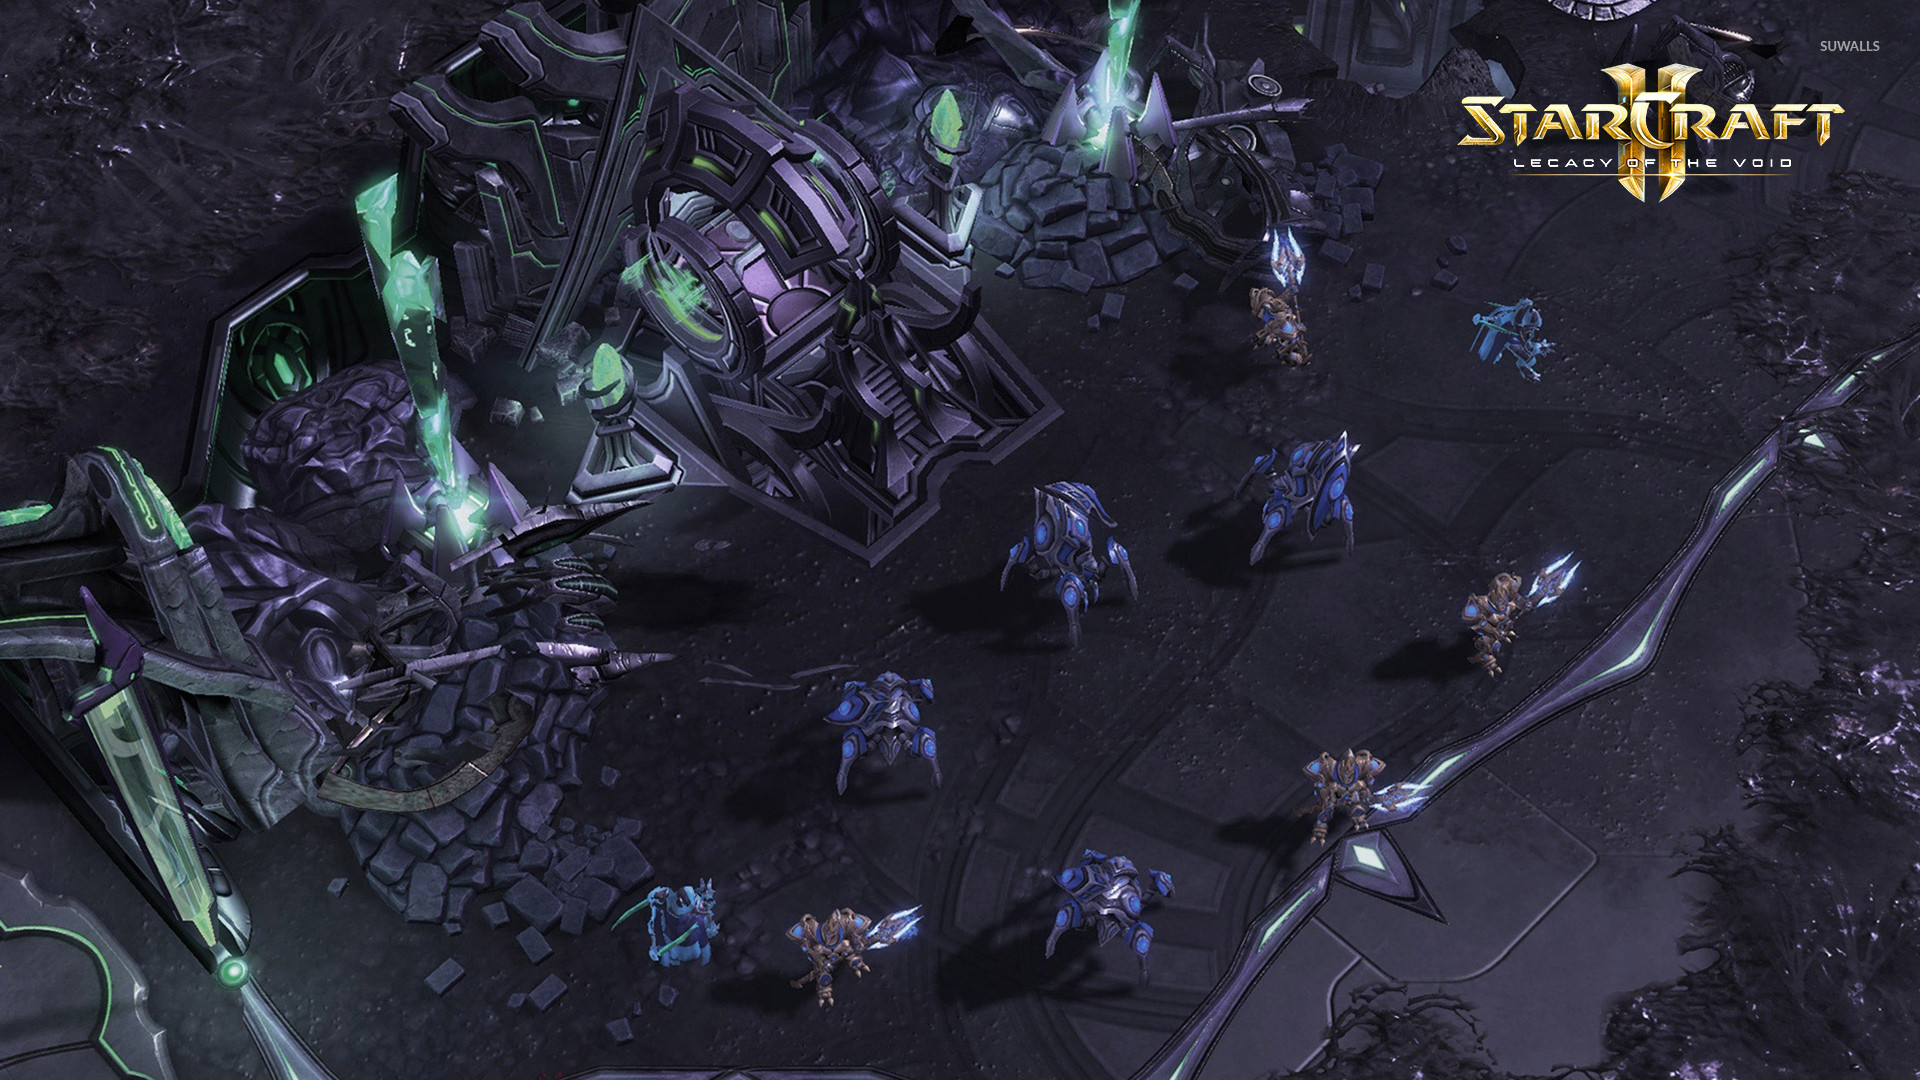 StarCraft II Legacy of the Void HD Wallpaper Background Image